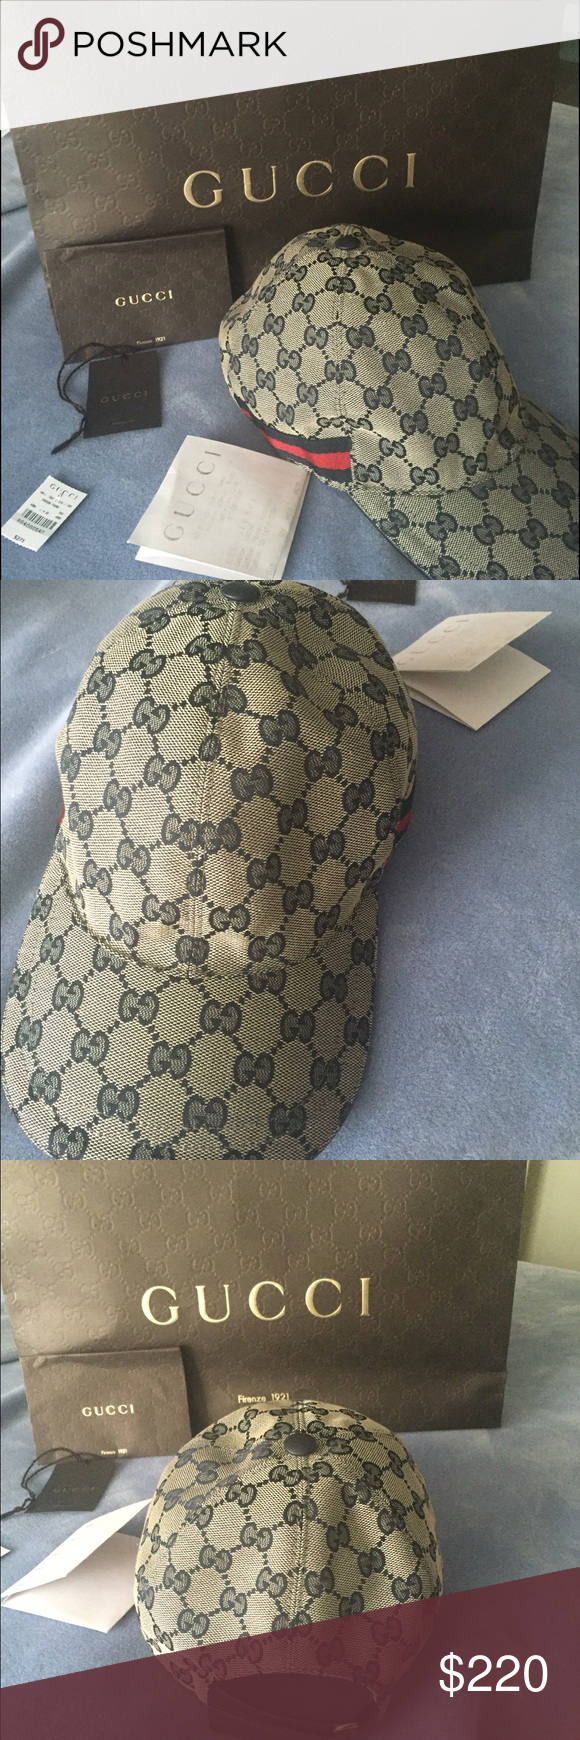 Authentic Gucci Baseball Hat Medium size Authentic Gucci Hat. Used once!  Comes with receipt 4d060c1c486